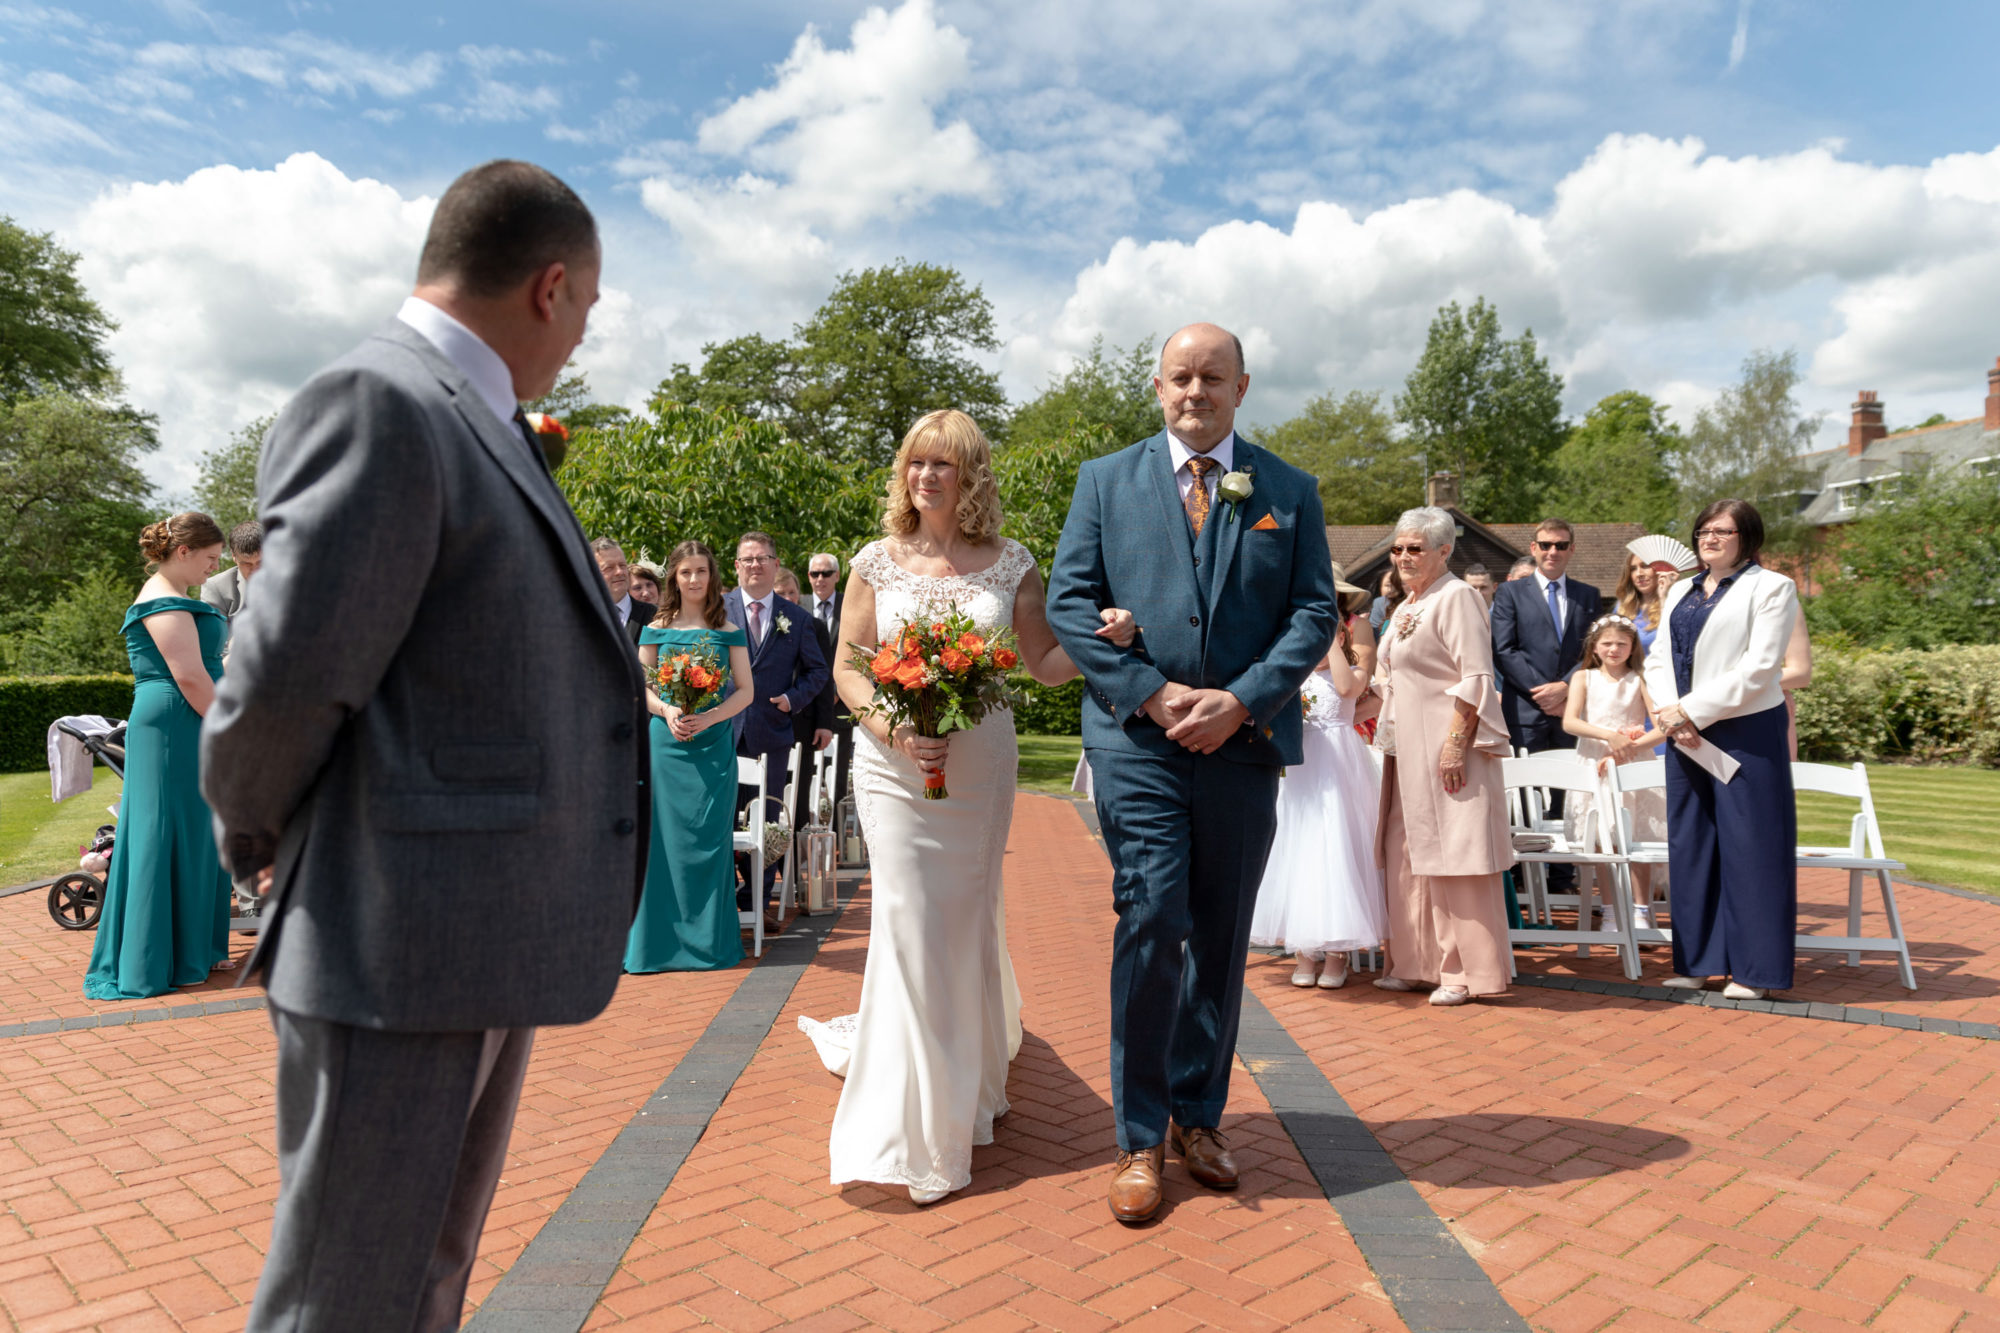 father gives away bride to groom ardencote luxury venue claverdon warwickshire oxford wedding photographers